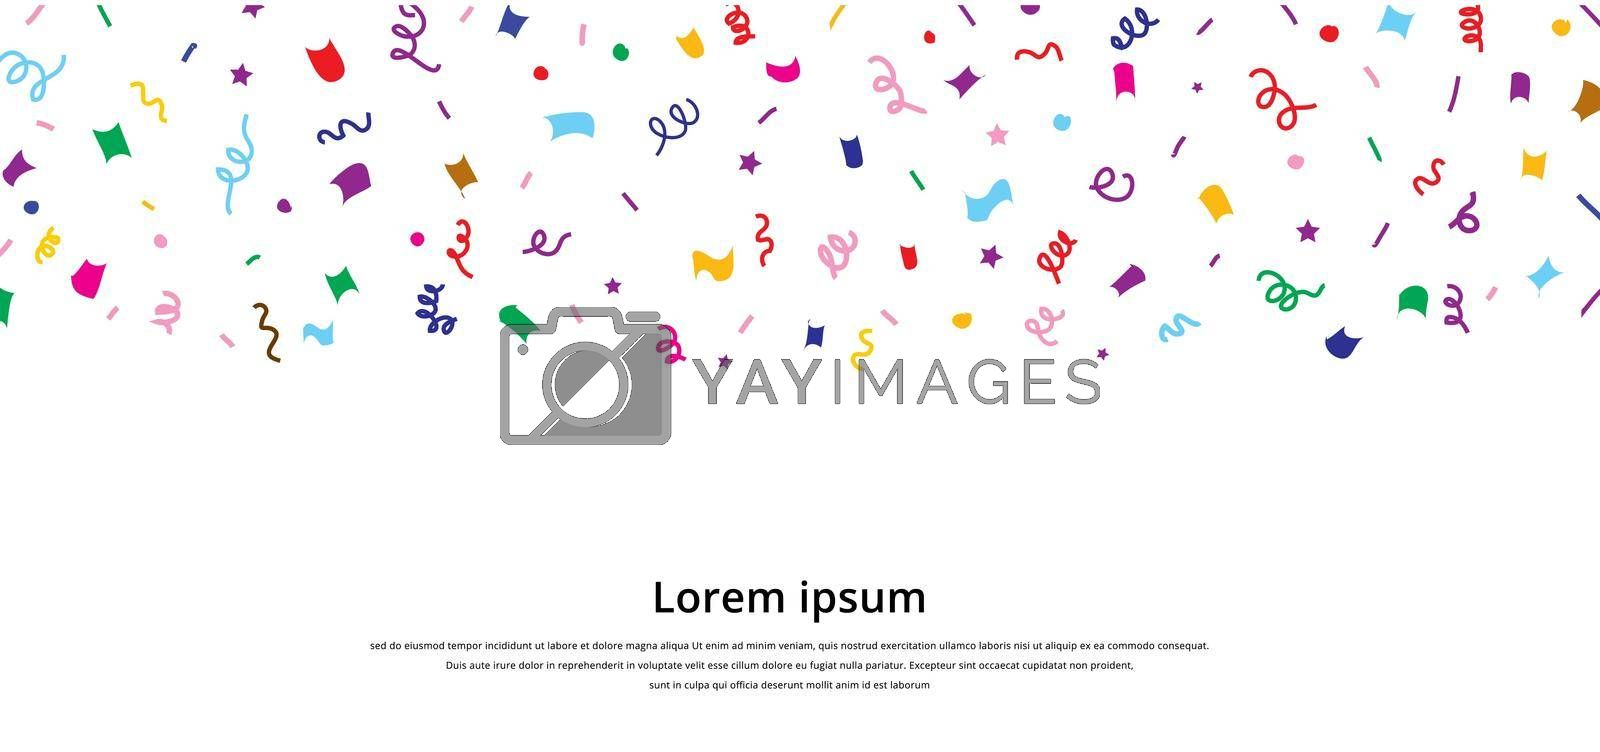 Colorful confetti repeat pattern for birthday party or event celebration invitation or decoration isolated on white background. Vector illustration